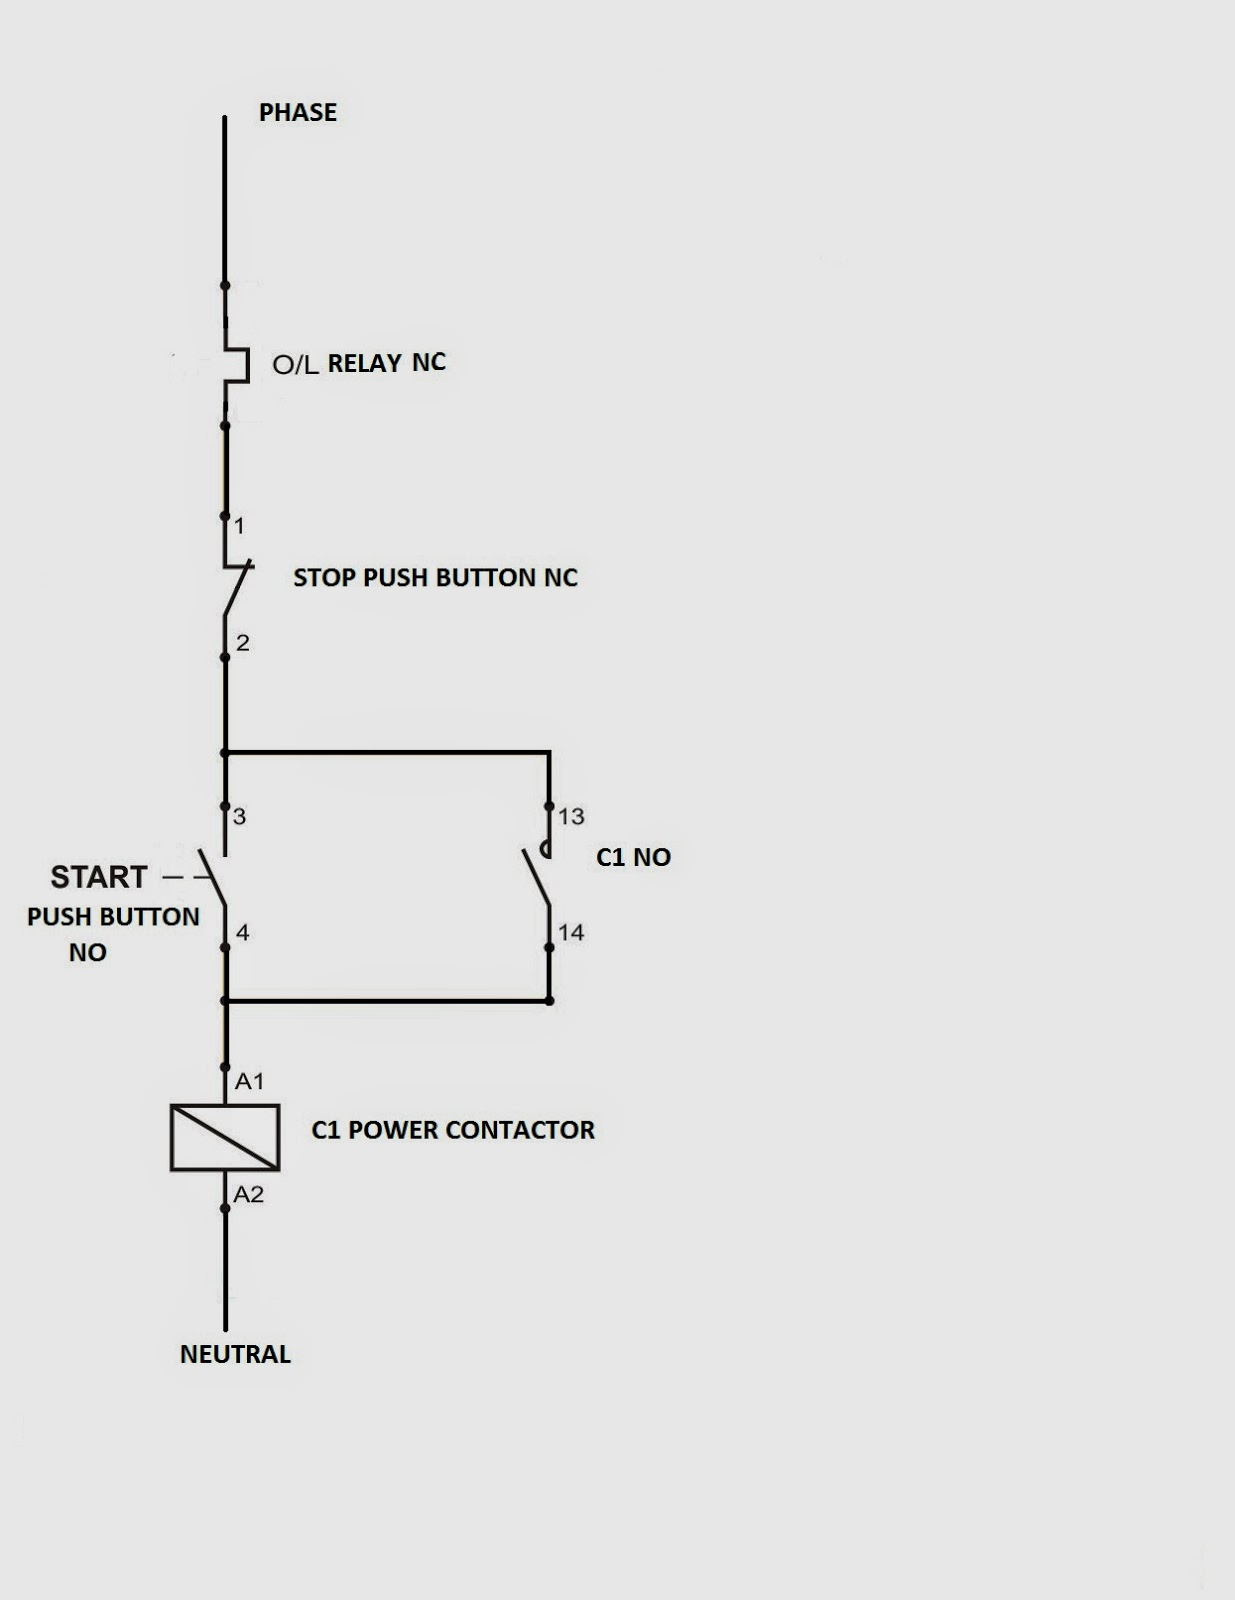 CONTROL?resize=665%2C862 direct online starter wiring diagram the best wiring diagram 2017 mem dol starter wiring diagram at panicattacktreatment.co